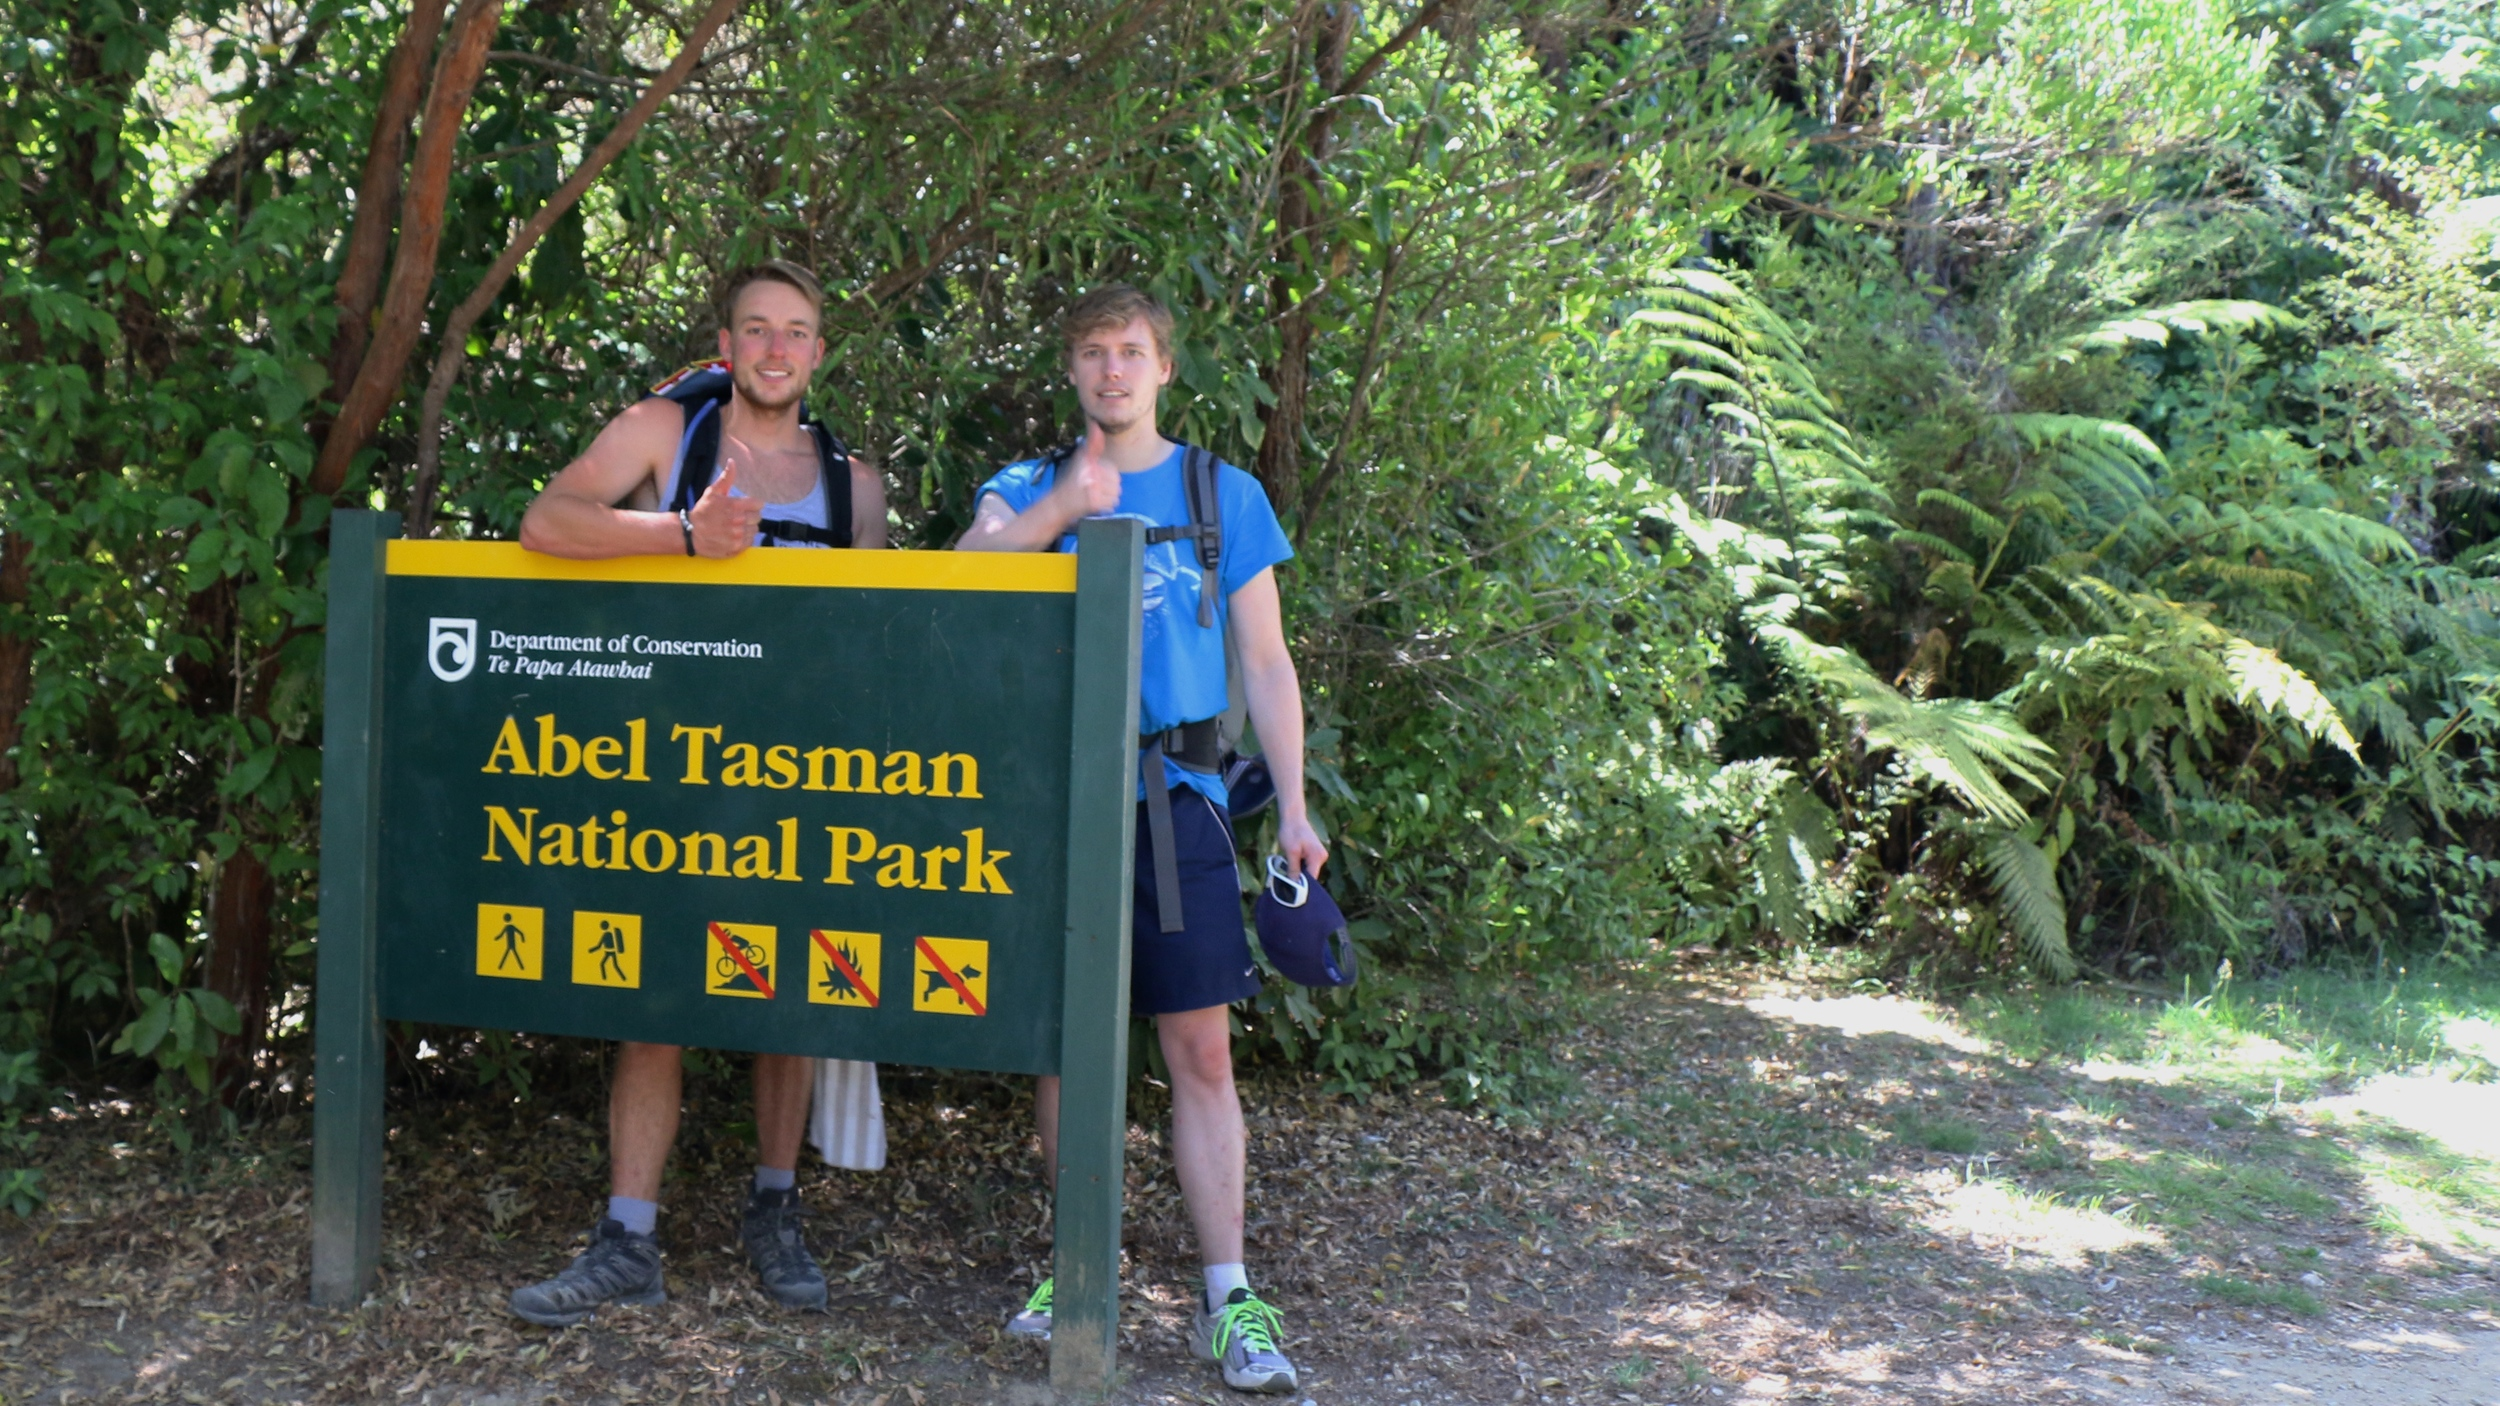 Abel Tasman - we did it!